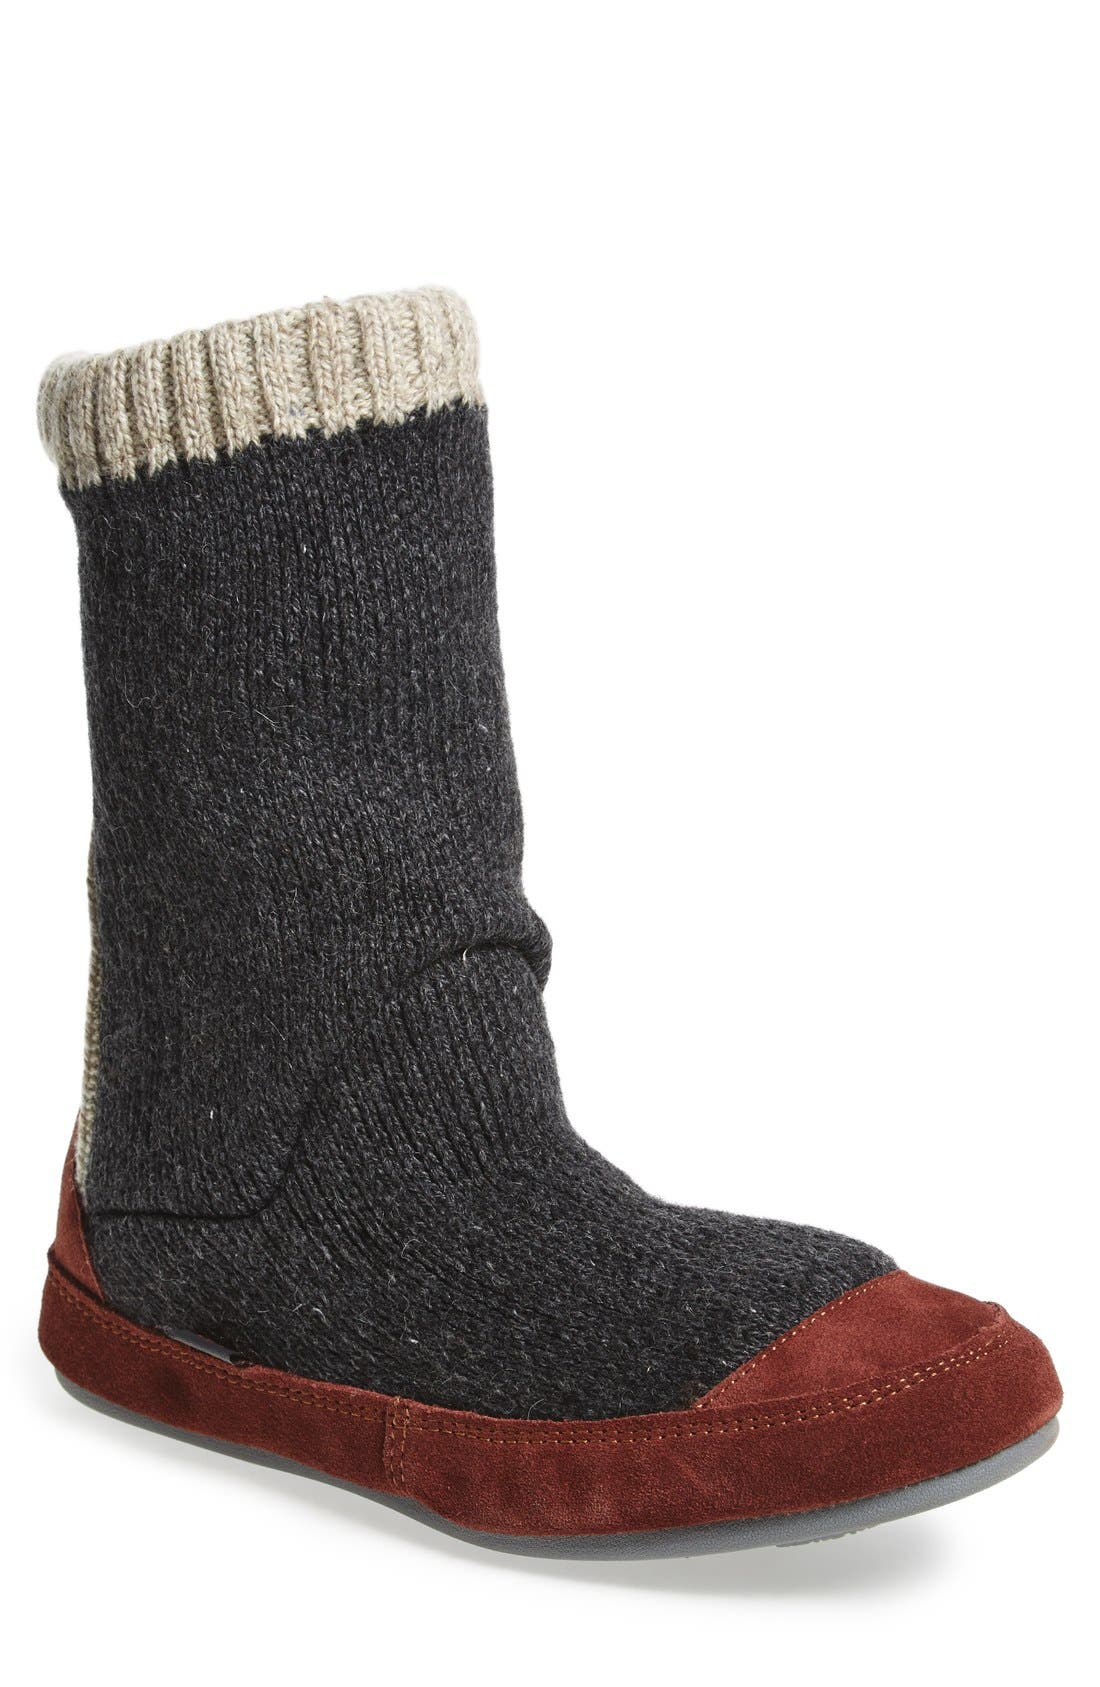 'Slouch Boot' Slipper,                             Main thumbnail 1, color,                             CHARCOAL RAGG WOOL